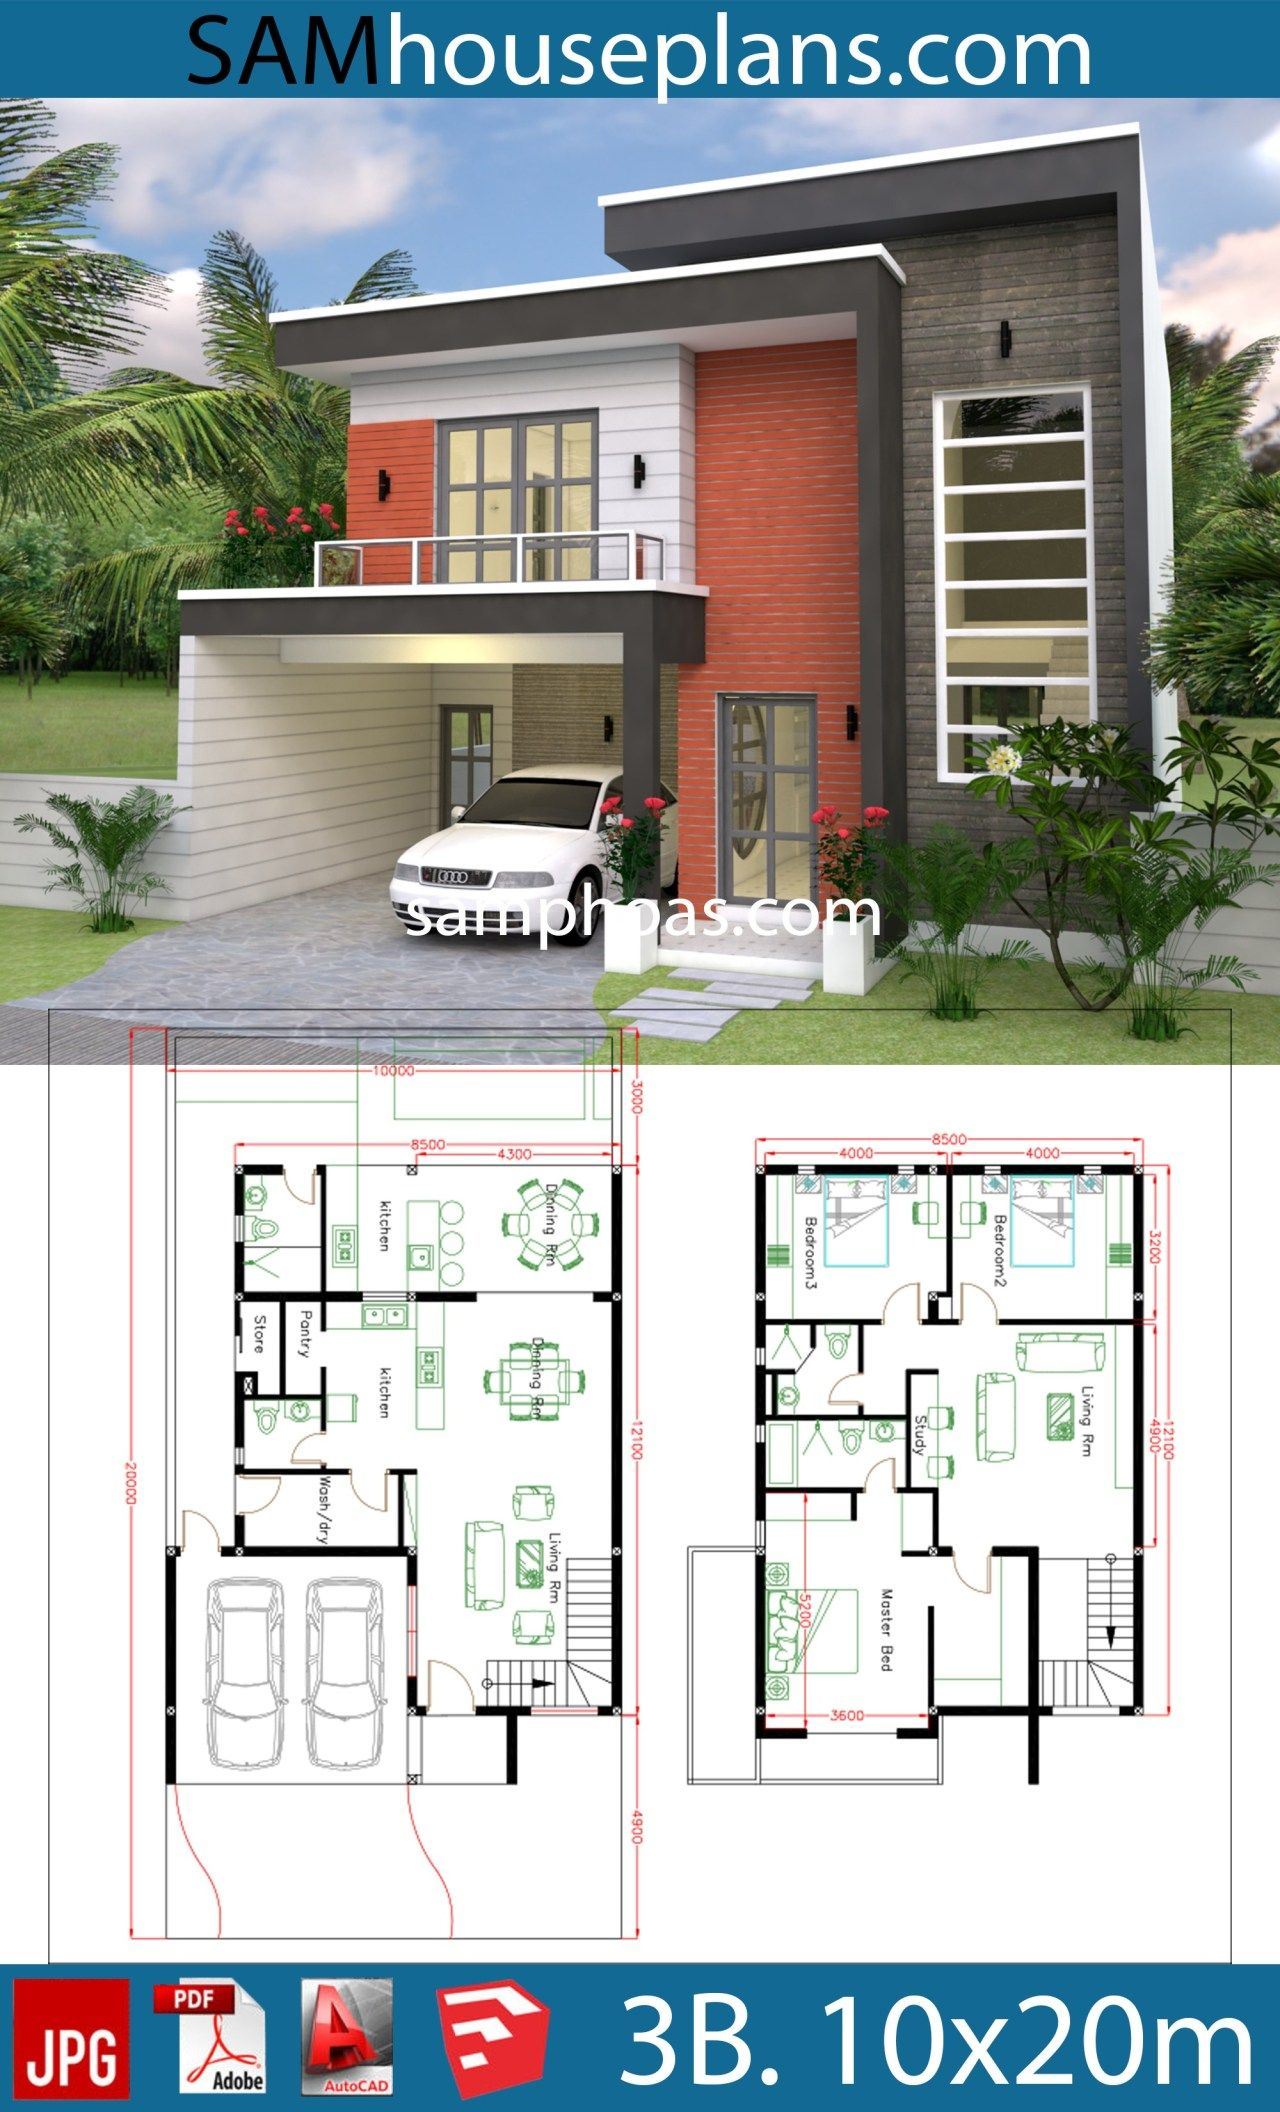 House Plans Plot 10x20m With 3 Bedrooms Sam House Plans Duplex House Design Duplex House Plans House Construction Plan